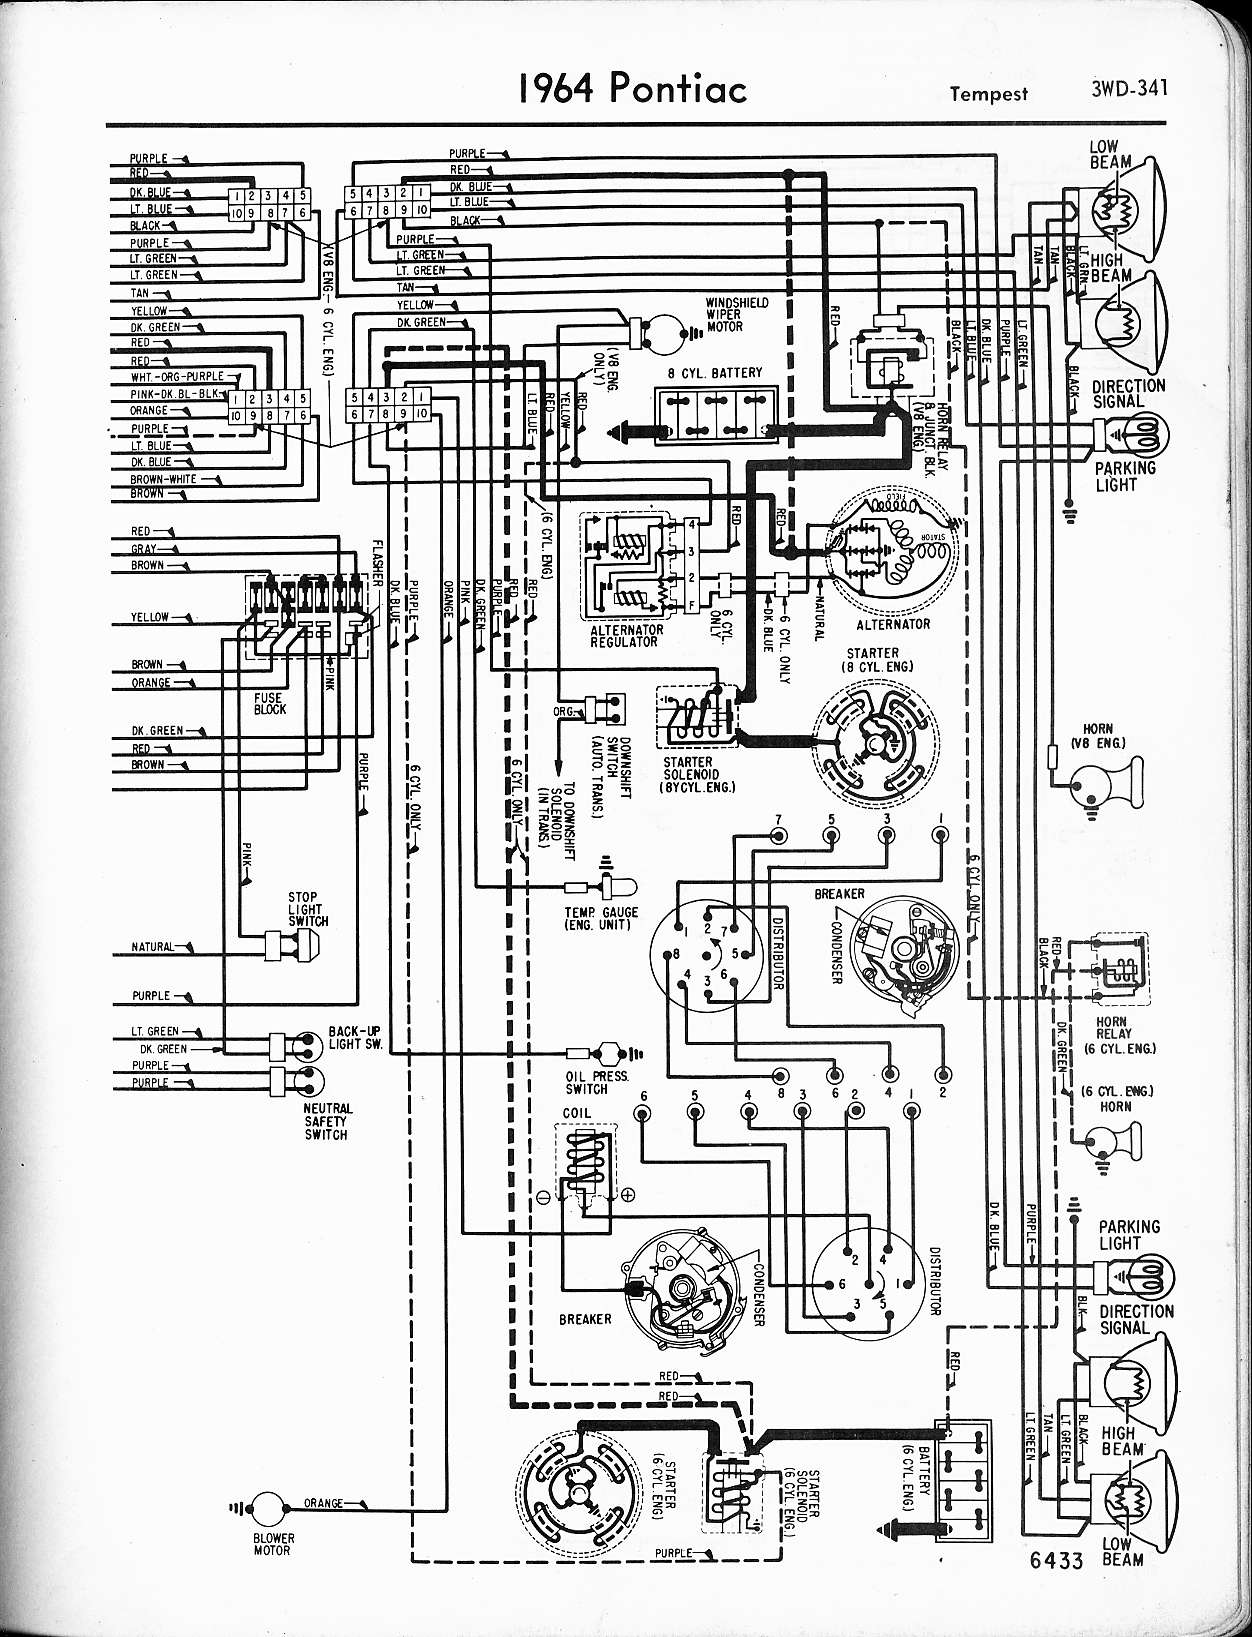 Bus additionally D Mustang Mach Starter Solenoid Wiring additionally Mustang Assembly moreover Hornrelay further Mwire. on 1970 corvette wiring diagram